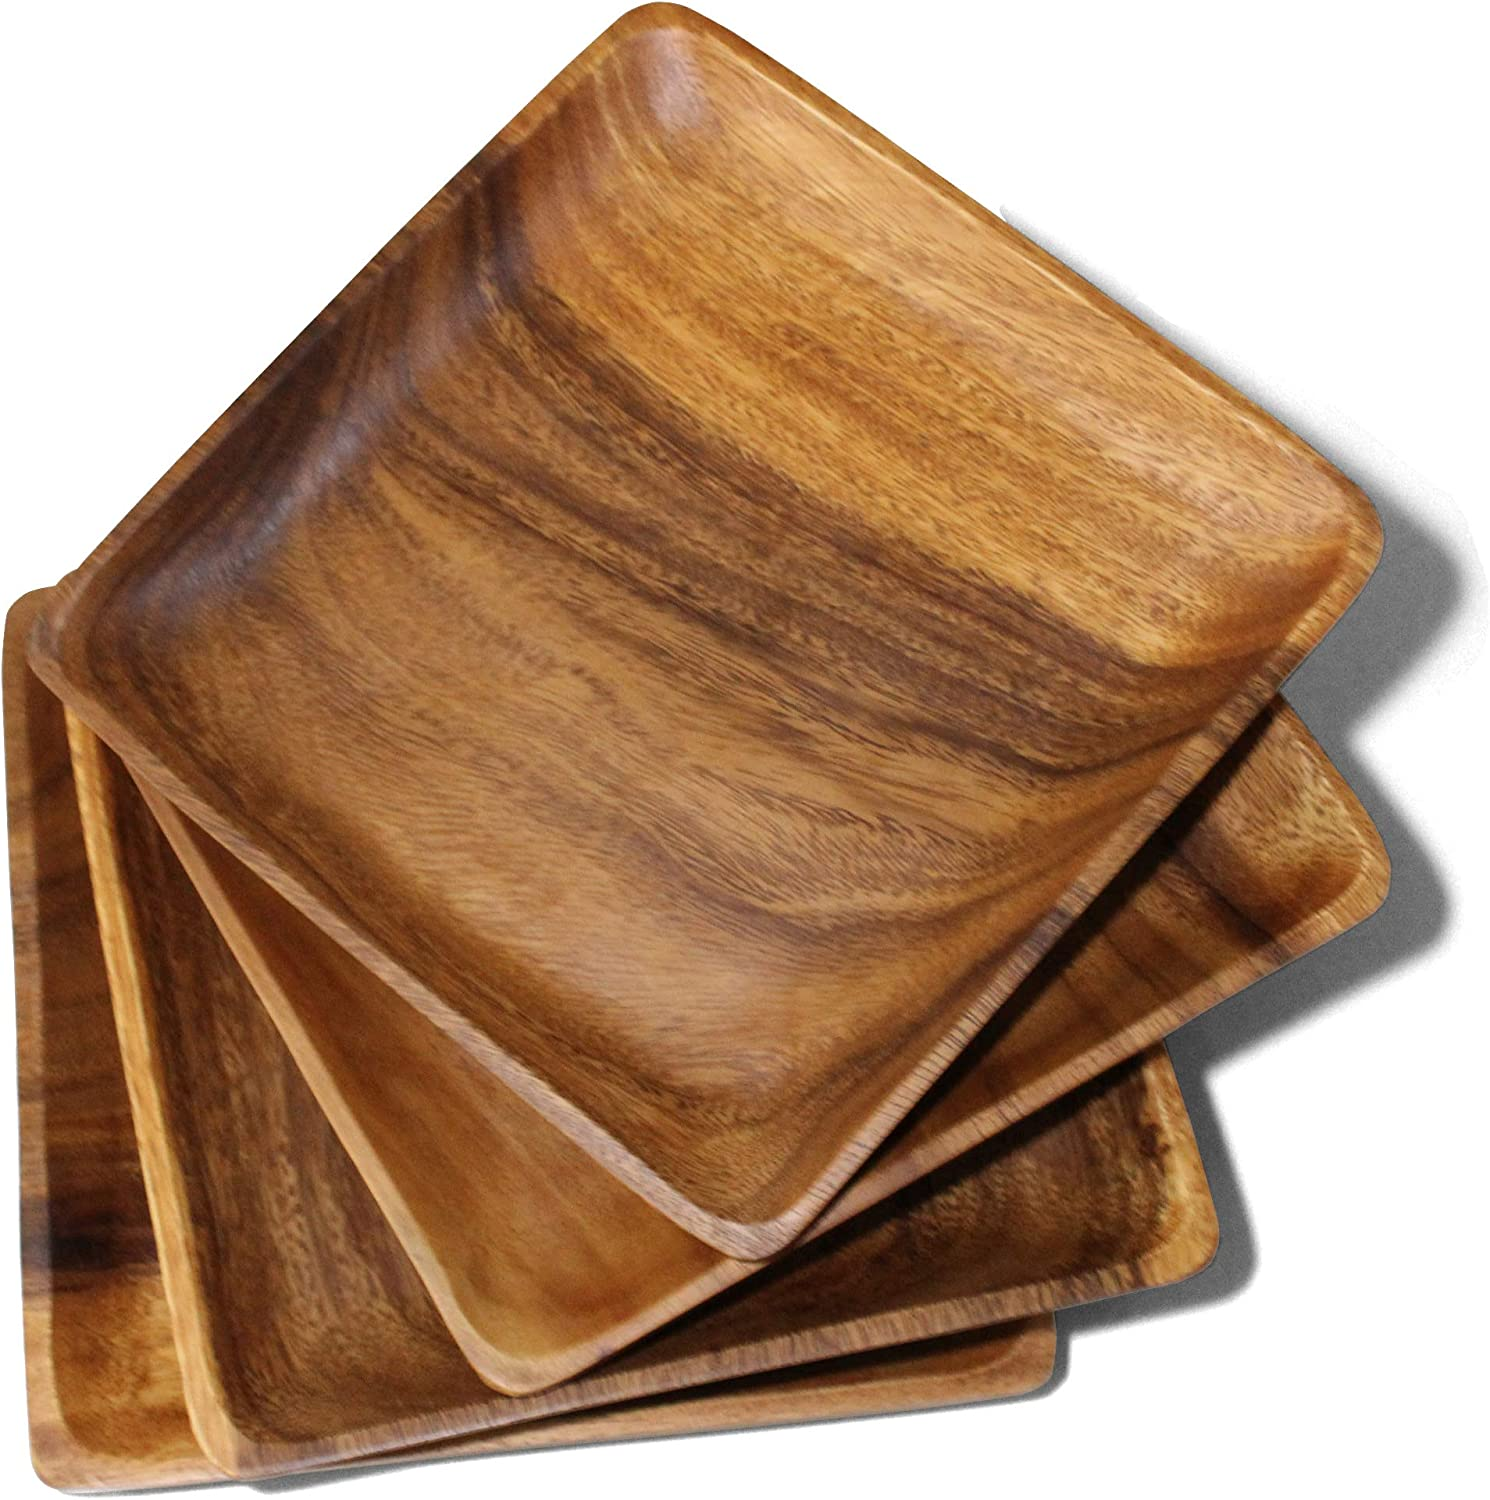 Wooden Plates Set Raleigh Mall of 4 Wood for Handcrafted Max 71% OFF Food Aca